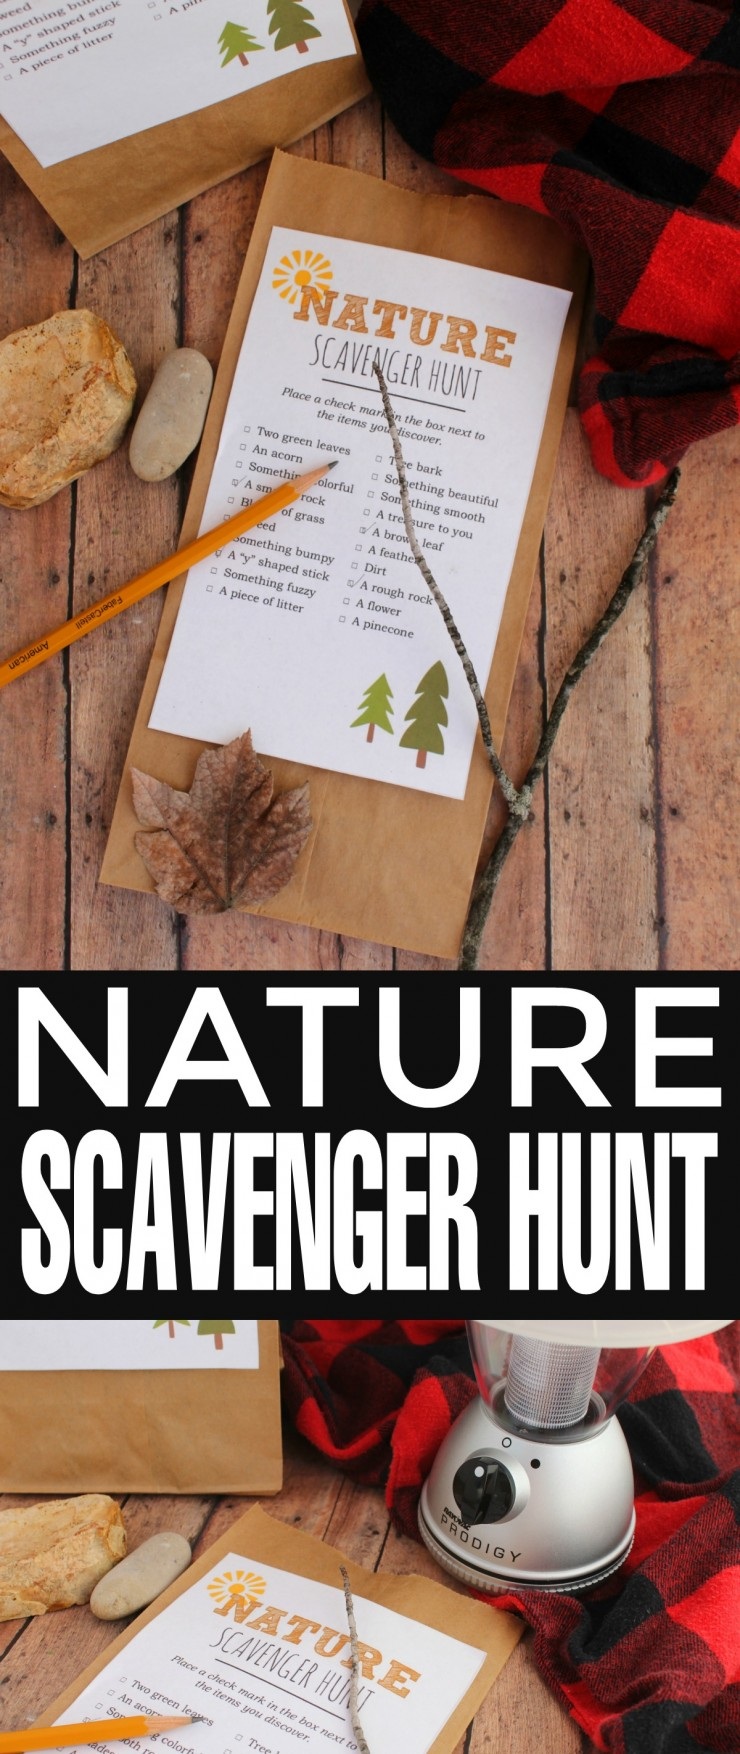 This Nature Scavenger Hunt Printable is perfect to take on camping trips, to the park, or even just the back yard for a fun nature scavenger hunt!